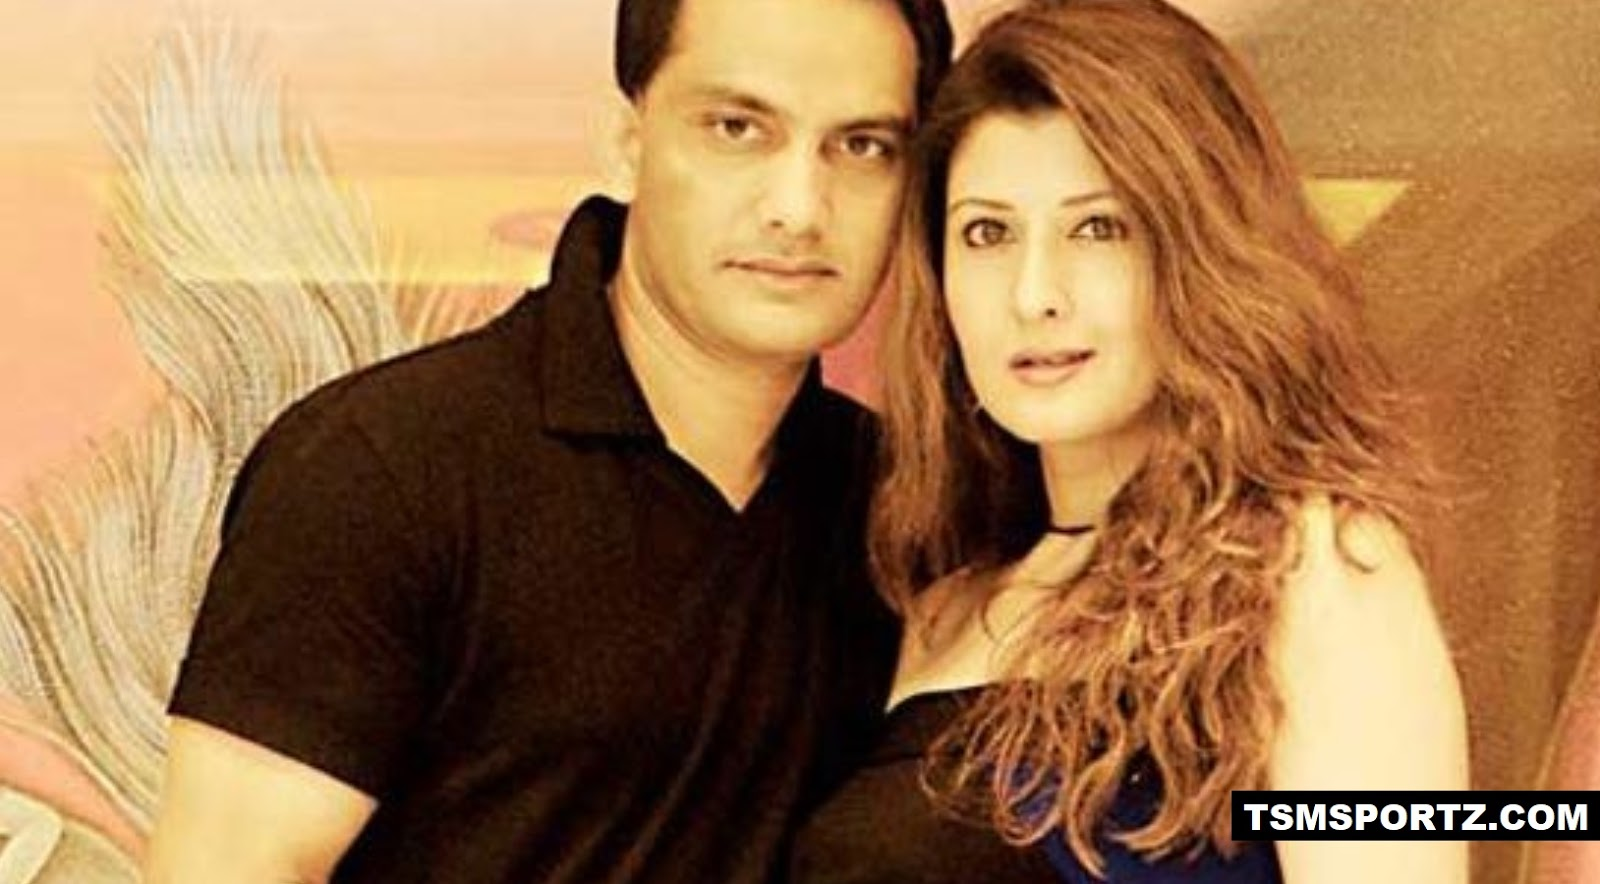 Mohammad Azharuddin Married to Sangeeta Bijlani in 1996